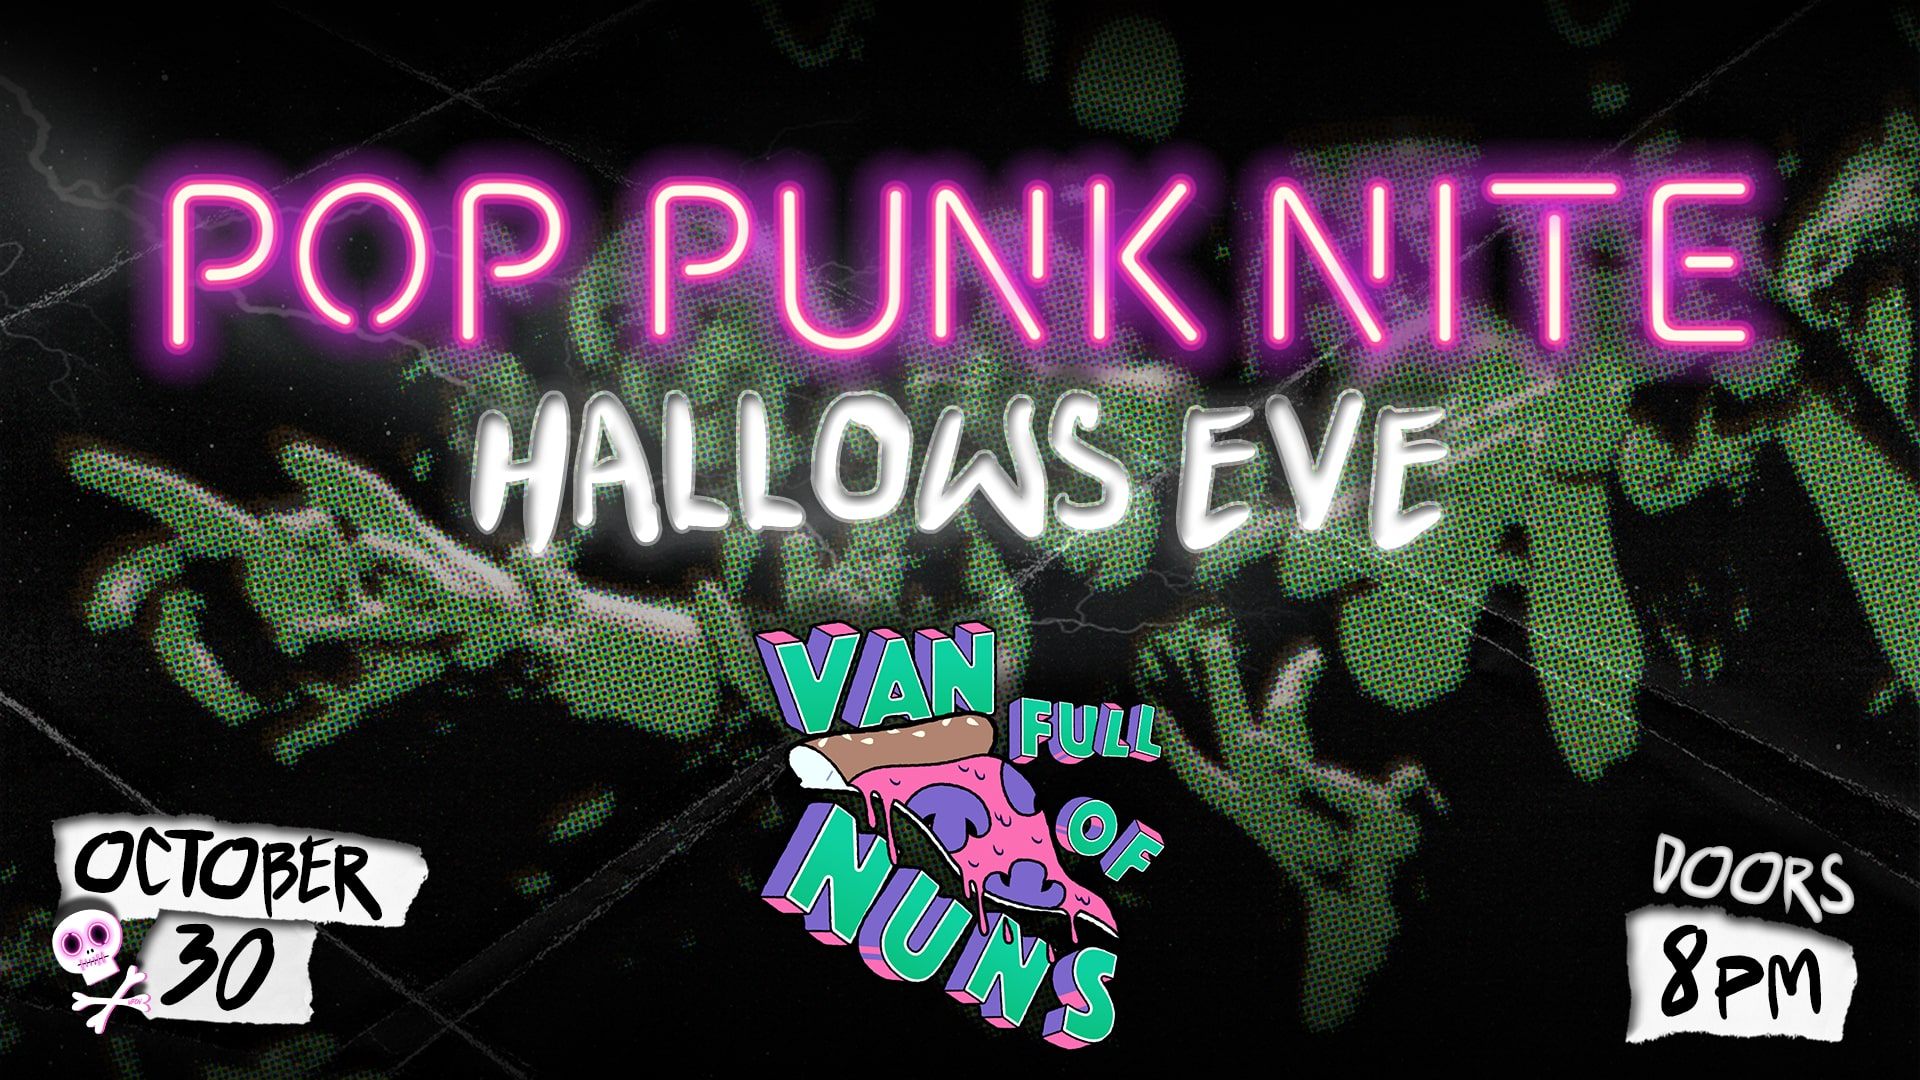 Promo image of Pop Punk Nite: Hallows Eve Party